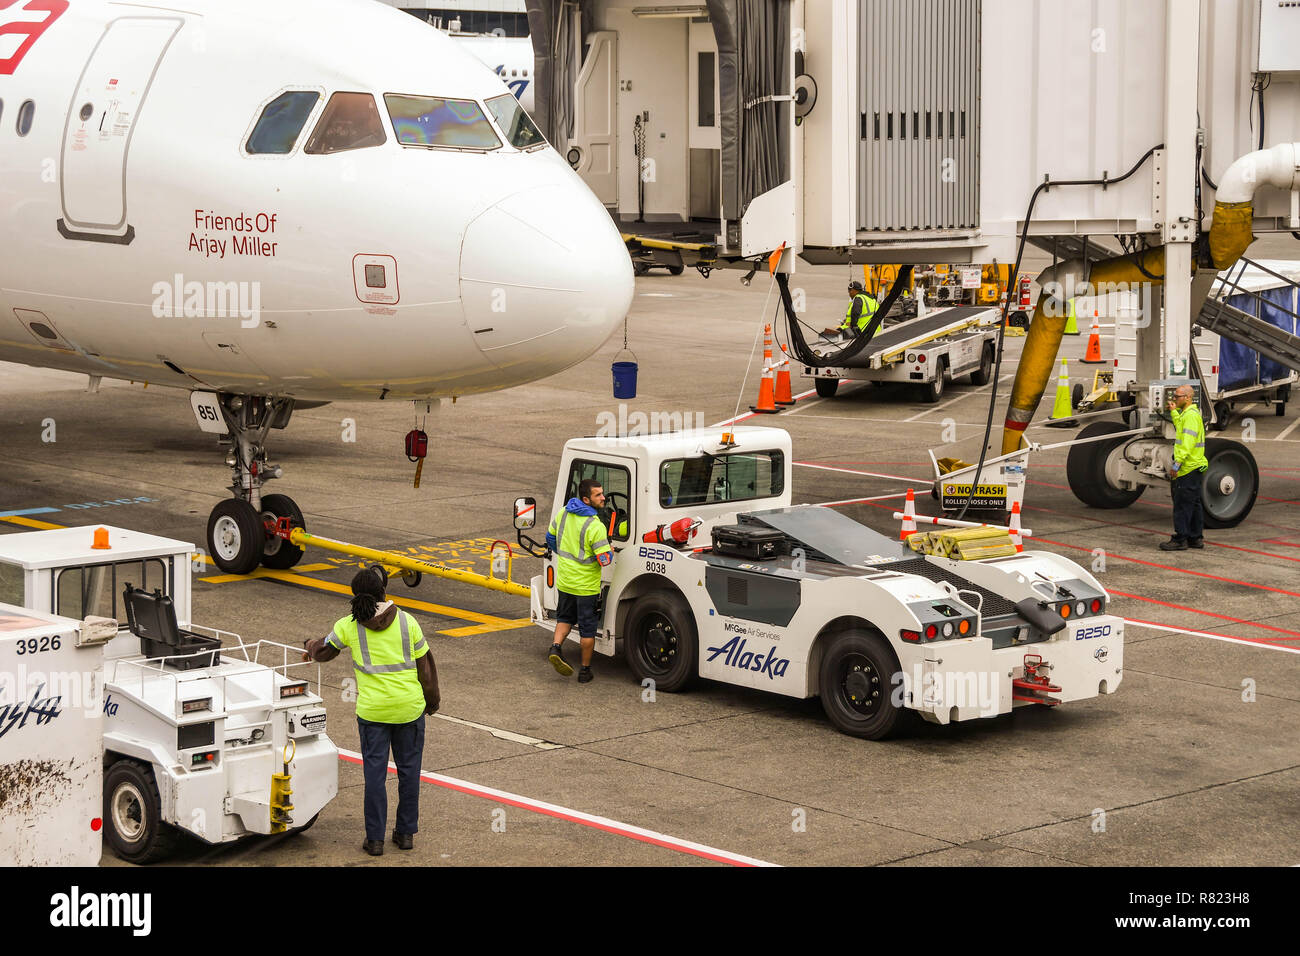 SEATTLE TACOMA AIRPORT, WA, USA - JUNE 2018: Close up view of the nose of a Virgin America Airbus A320 jet. A tug is attached to the plane to push it  - Stock Image